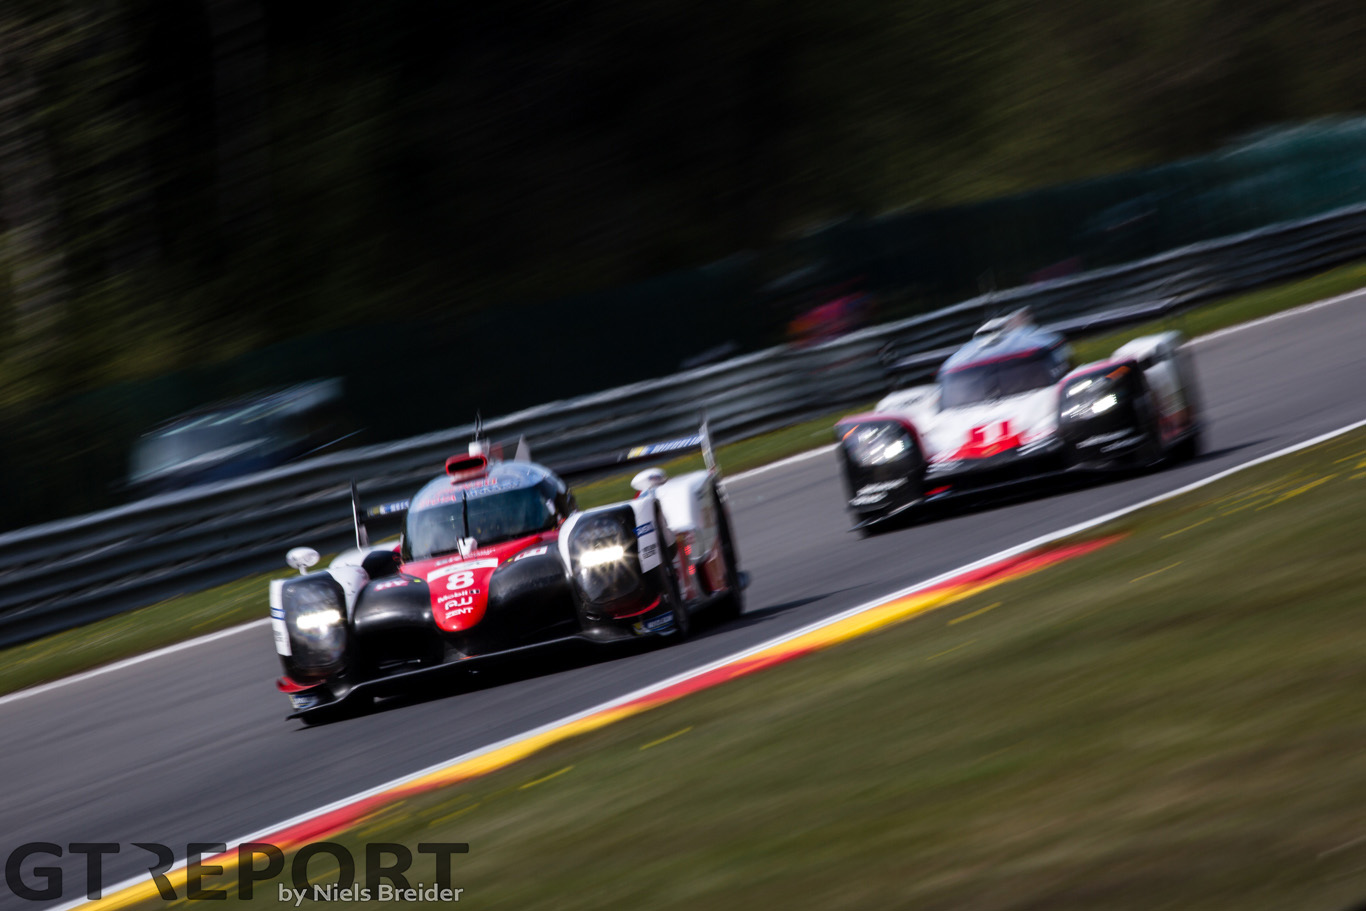 FIA WEC Spa race report: Red and white all over